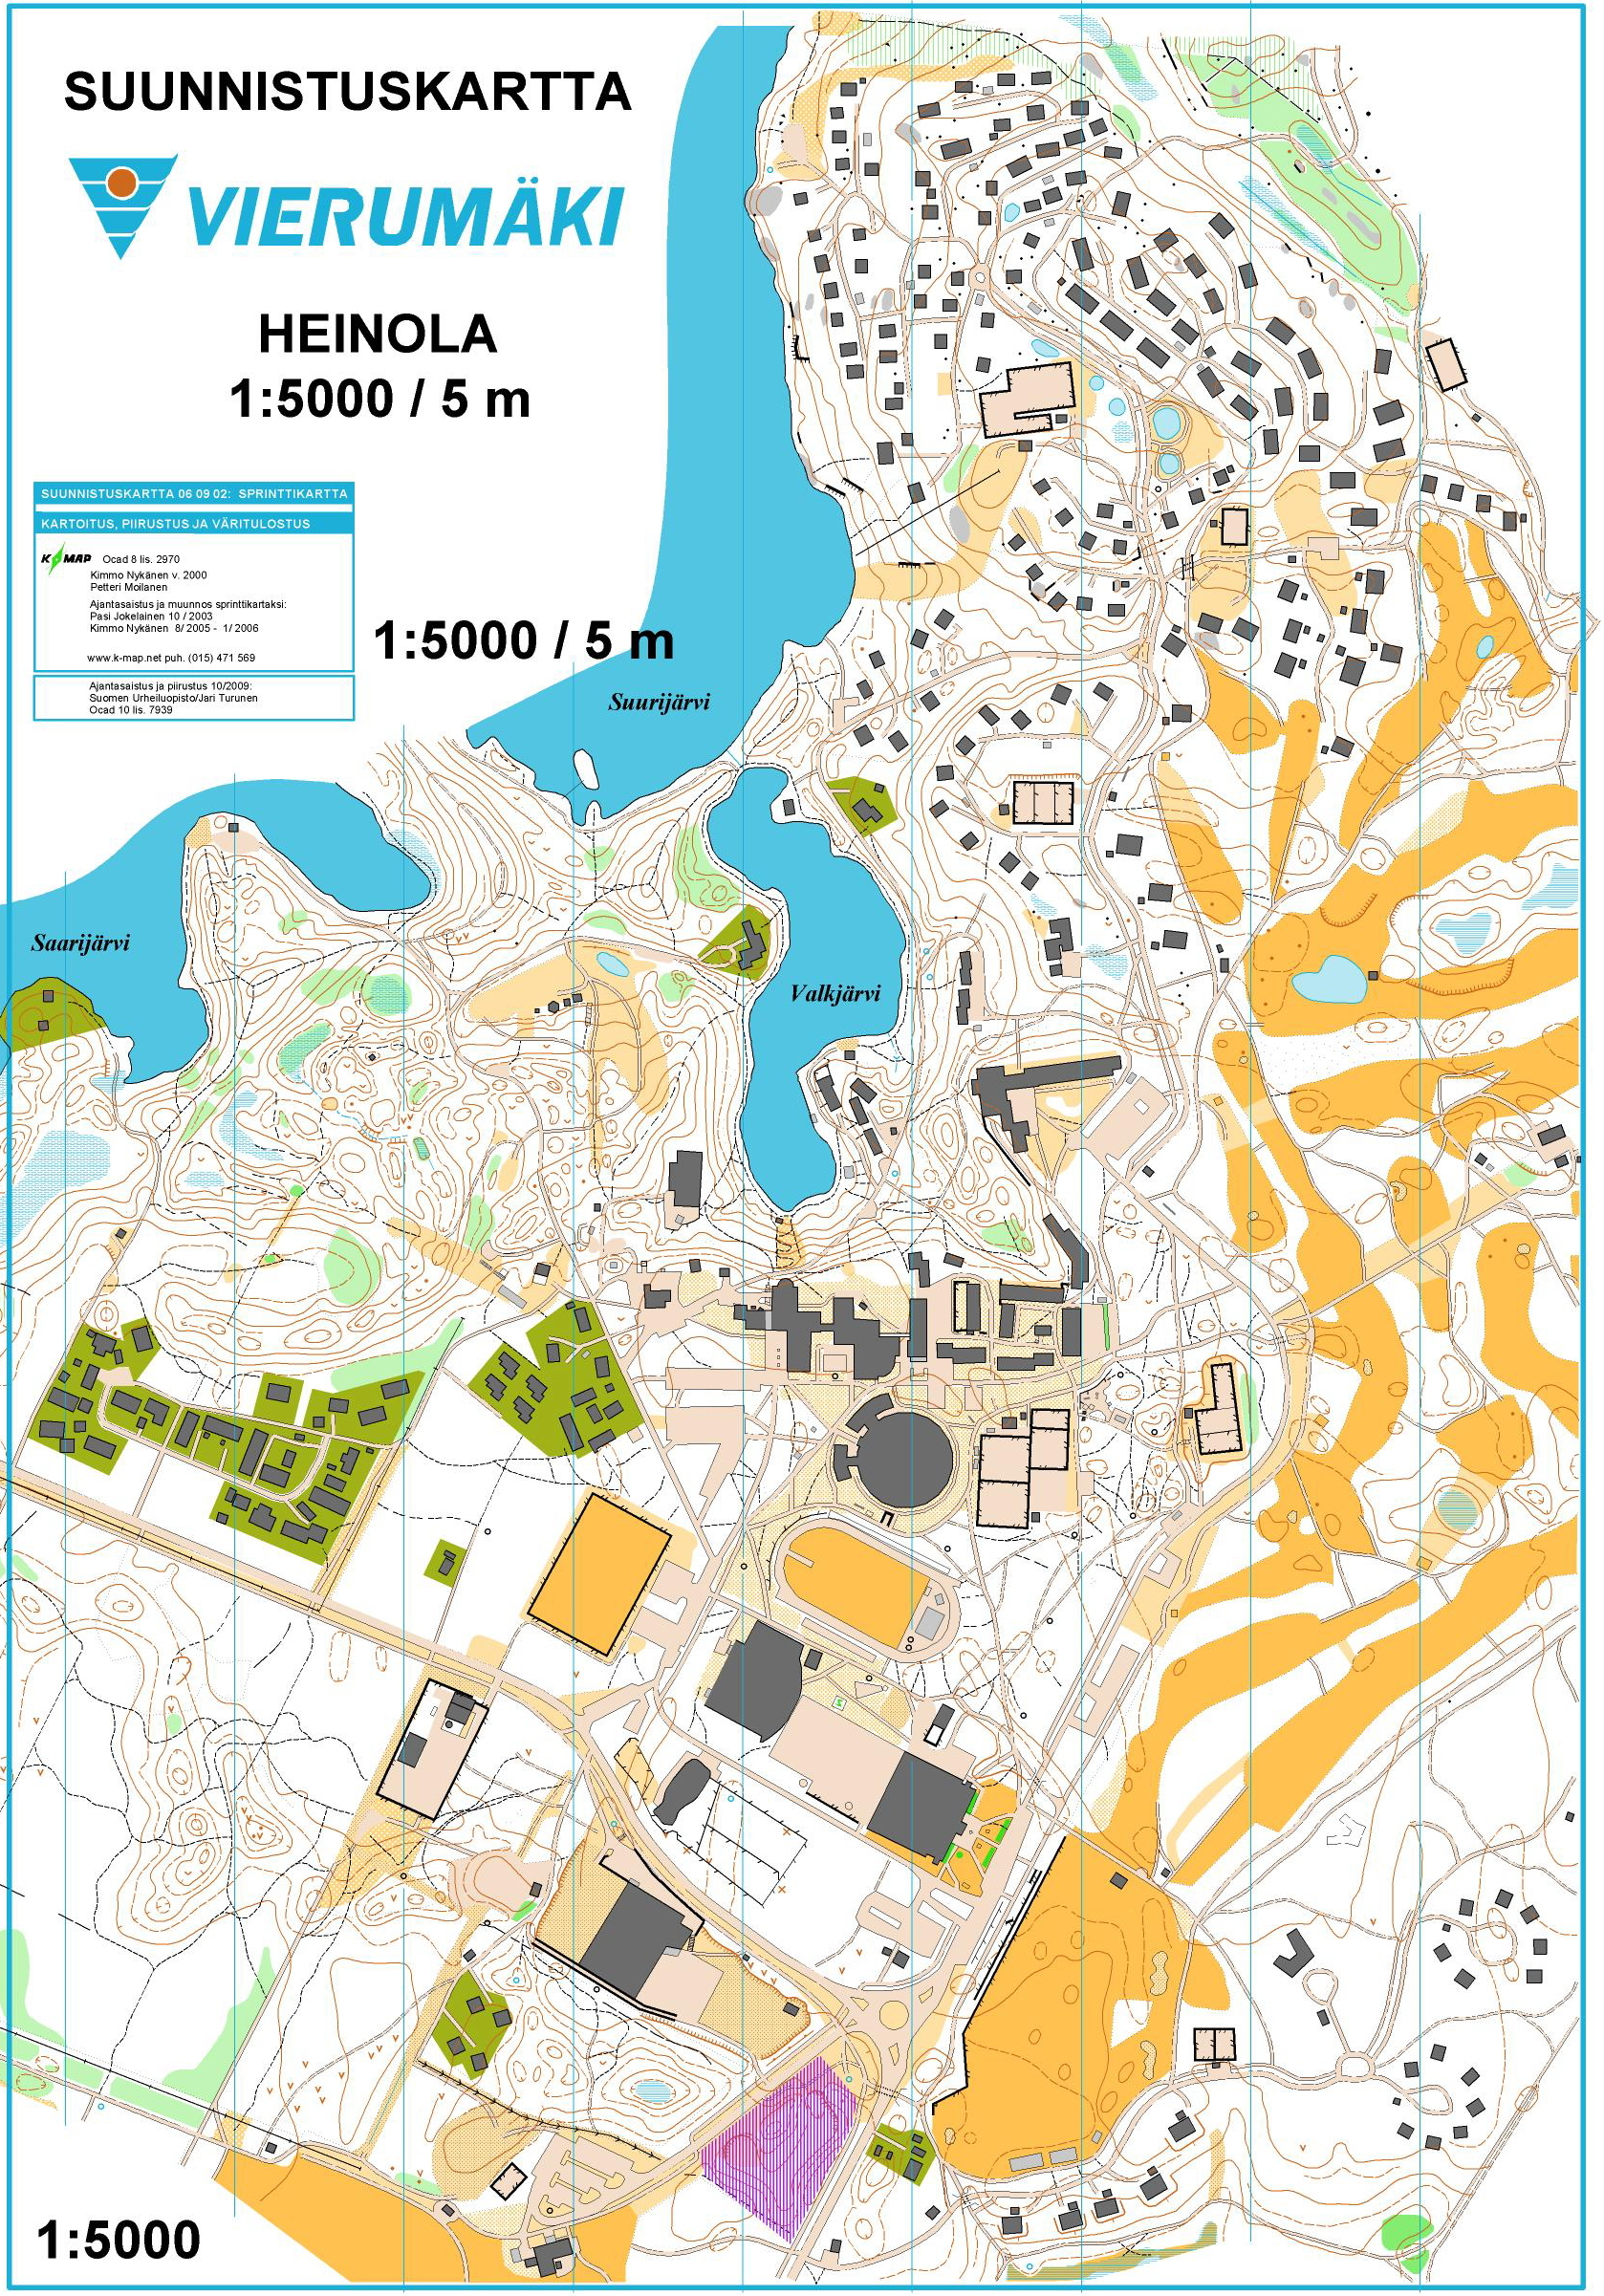 Korttelikuppi Vierumki February 10th 2010 Orienteering Map